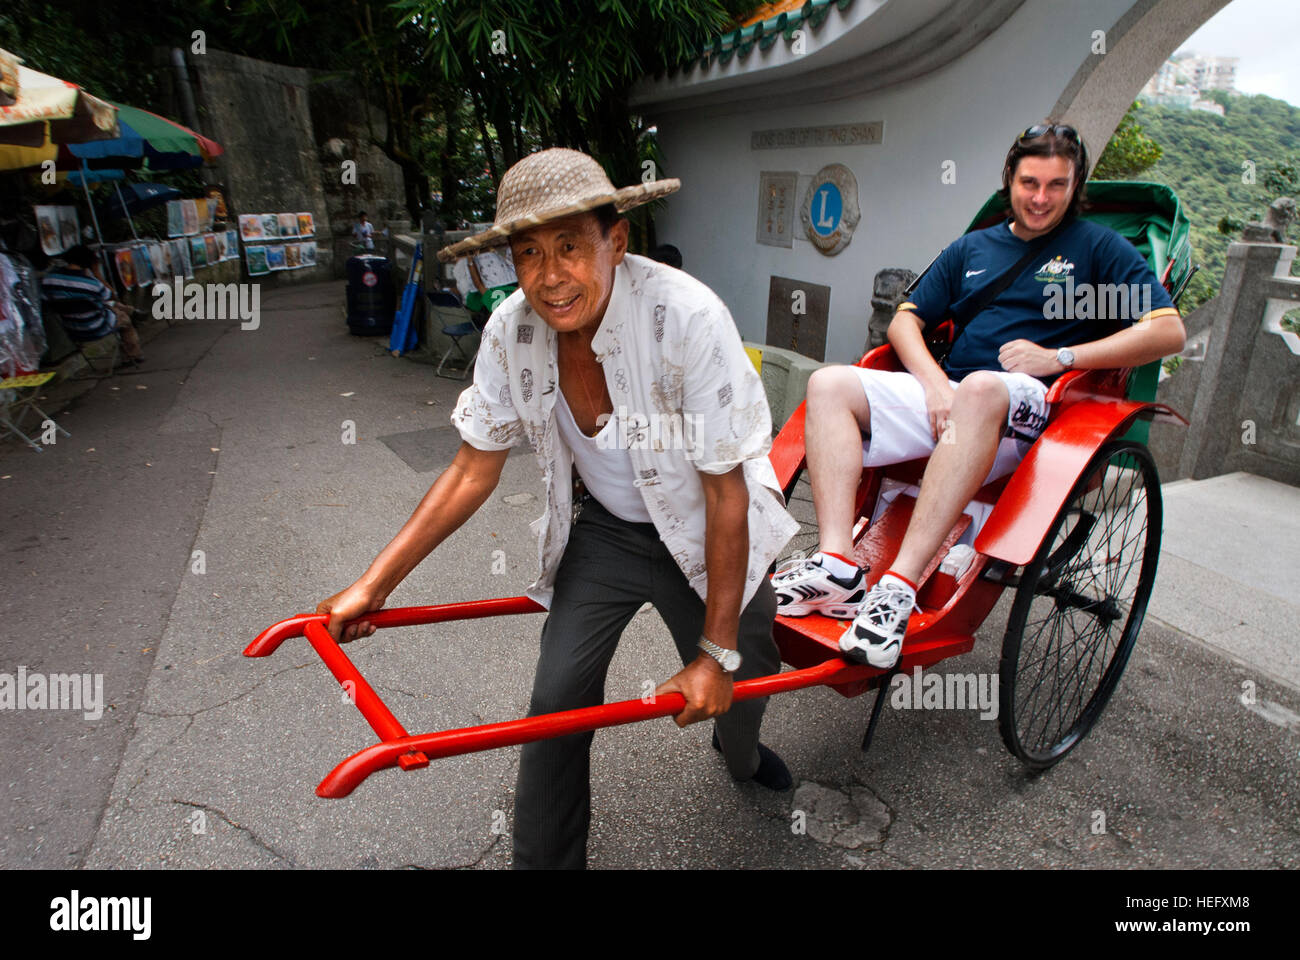 A tourists taken pictures inside of a old Rickshaw, Hong Kong, China. - Stock Image